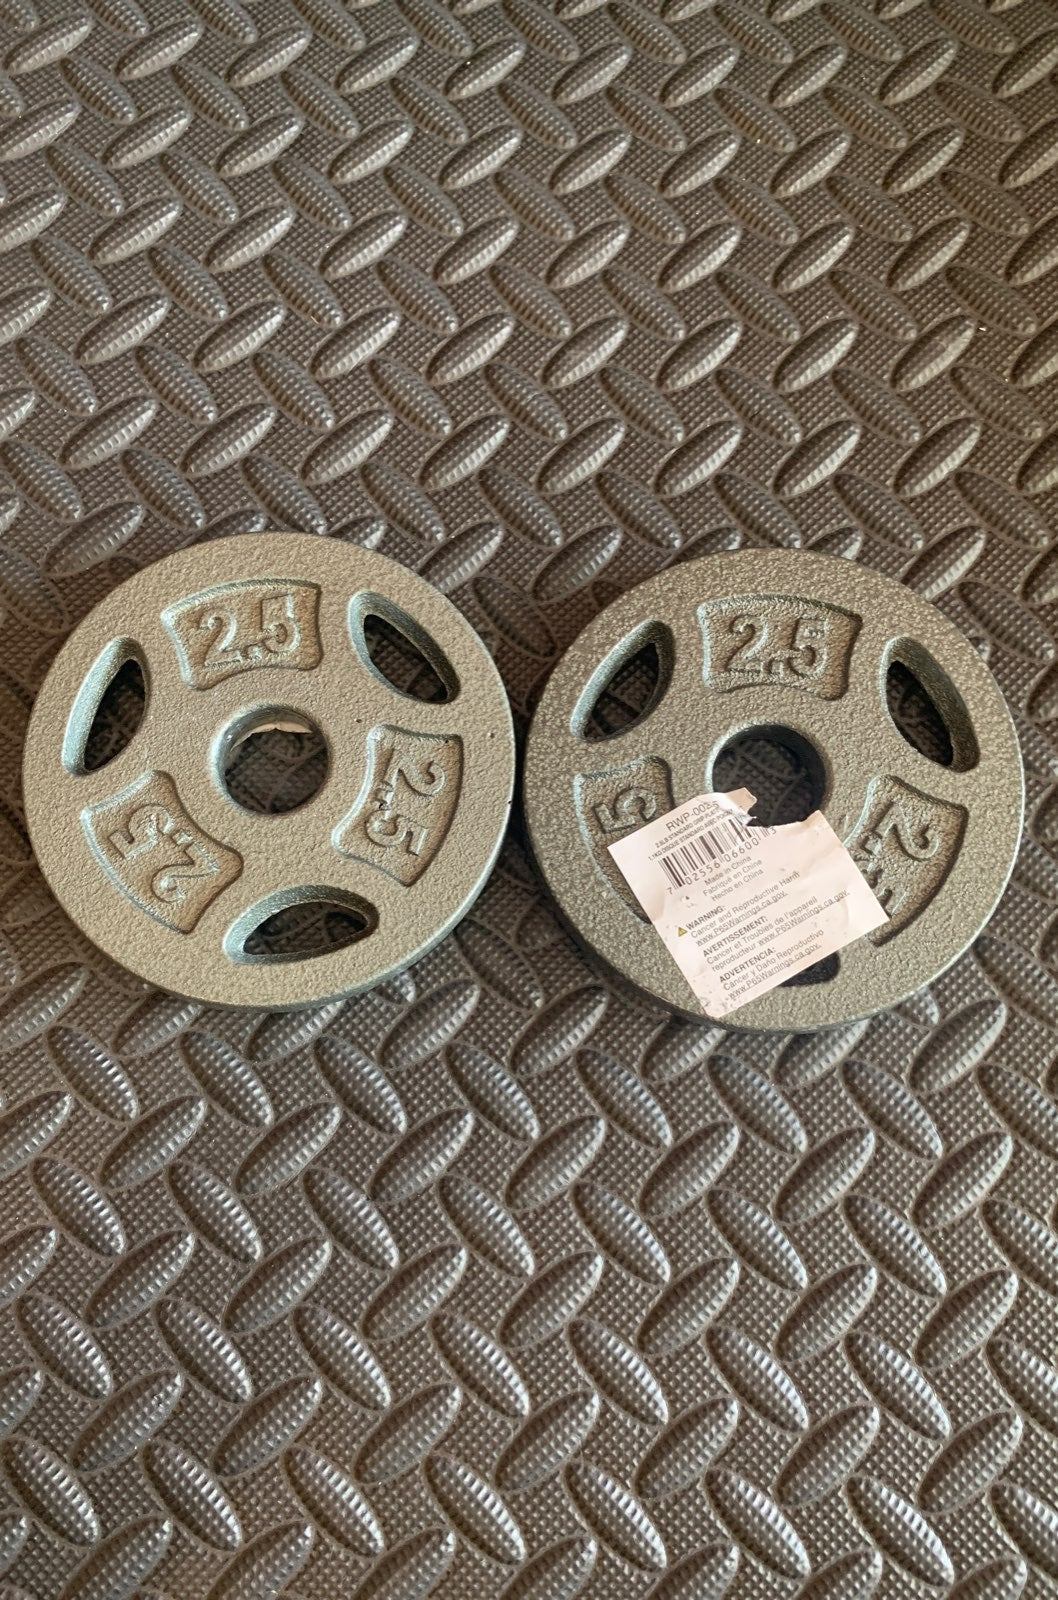 2.5 Lb Pound 1 inch Barbell Weight Plate